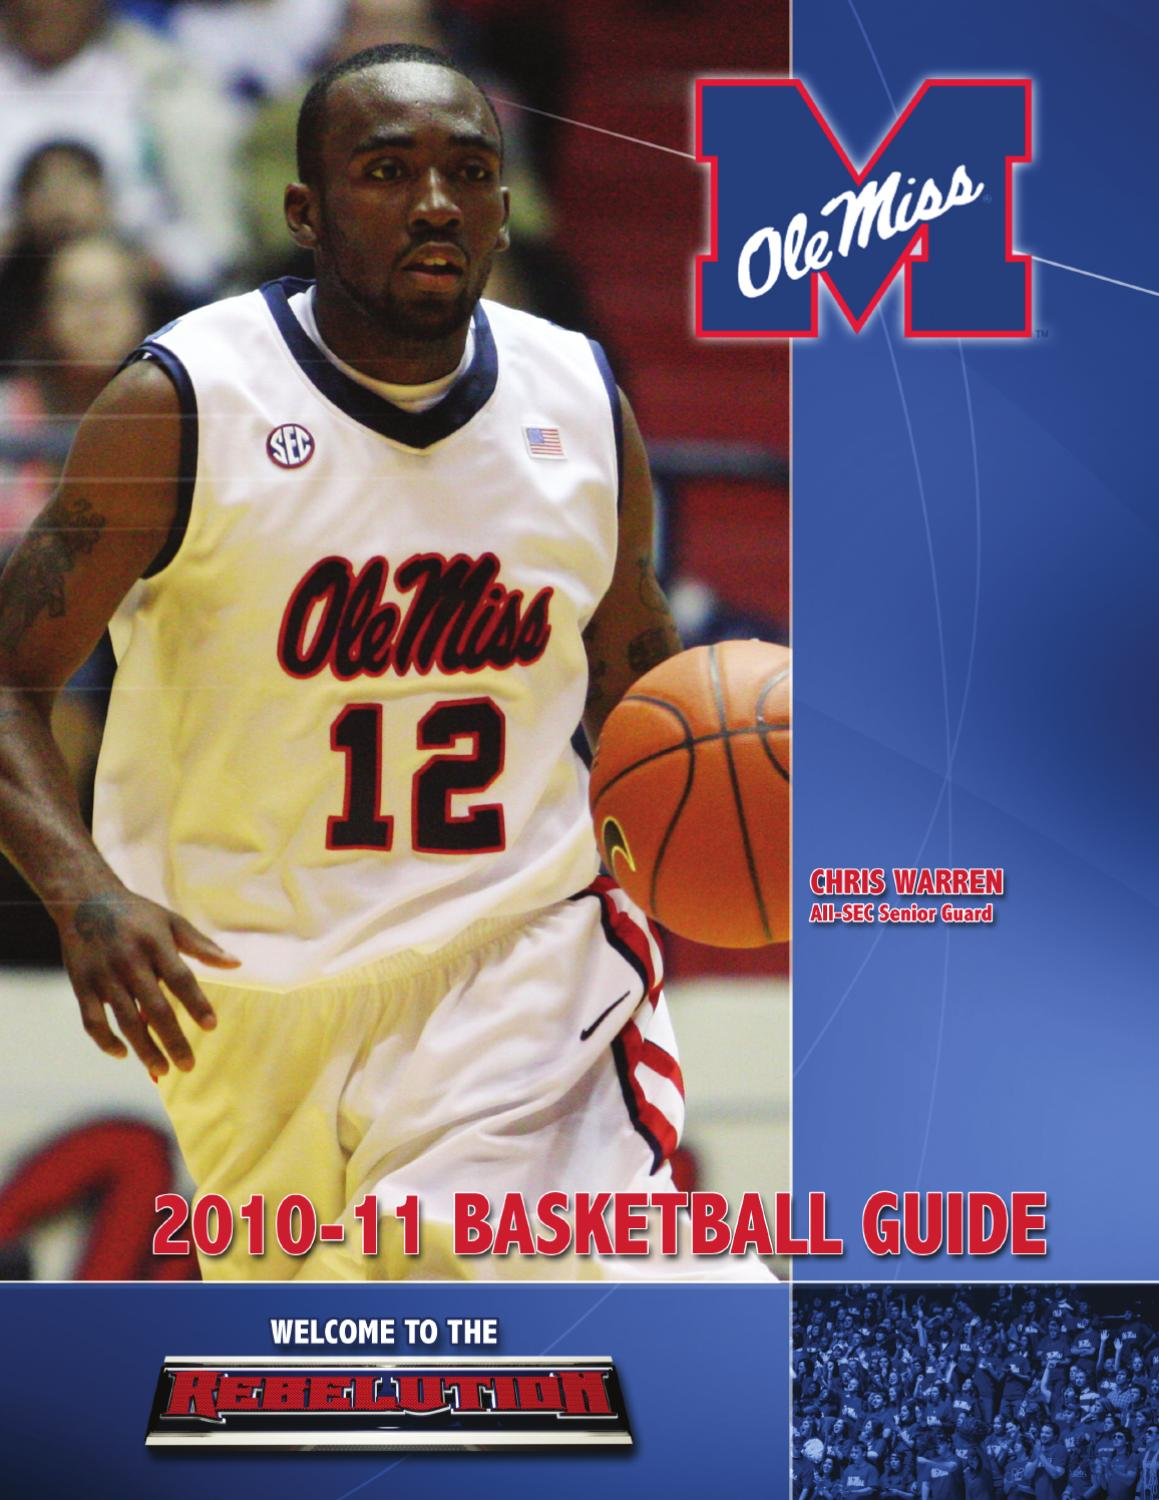 2017-18 Ole Miss Men's Basketball Media Guide by Ole Miss Athletics - issuu